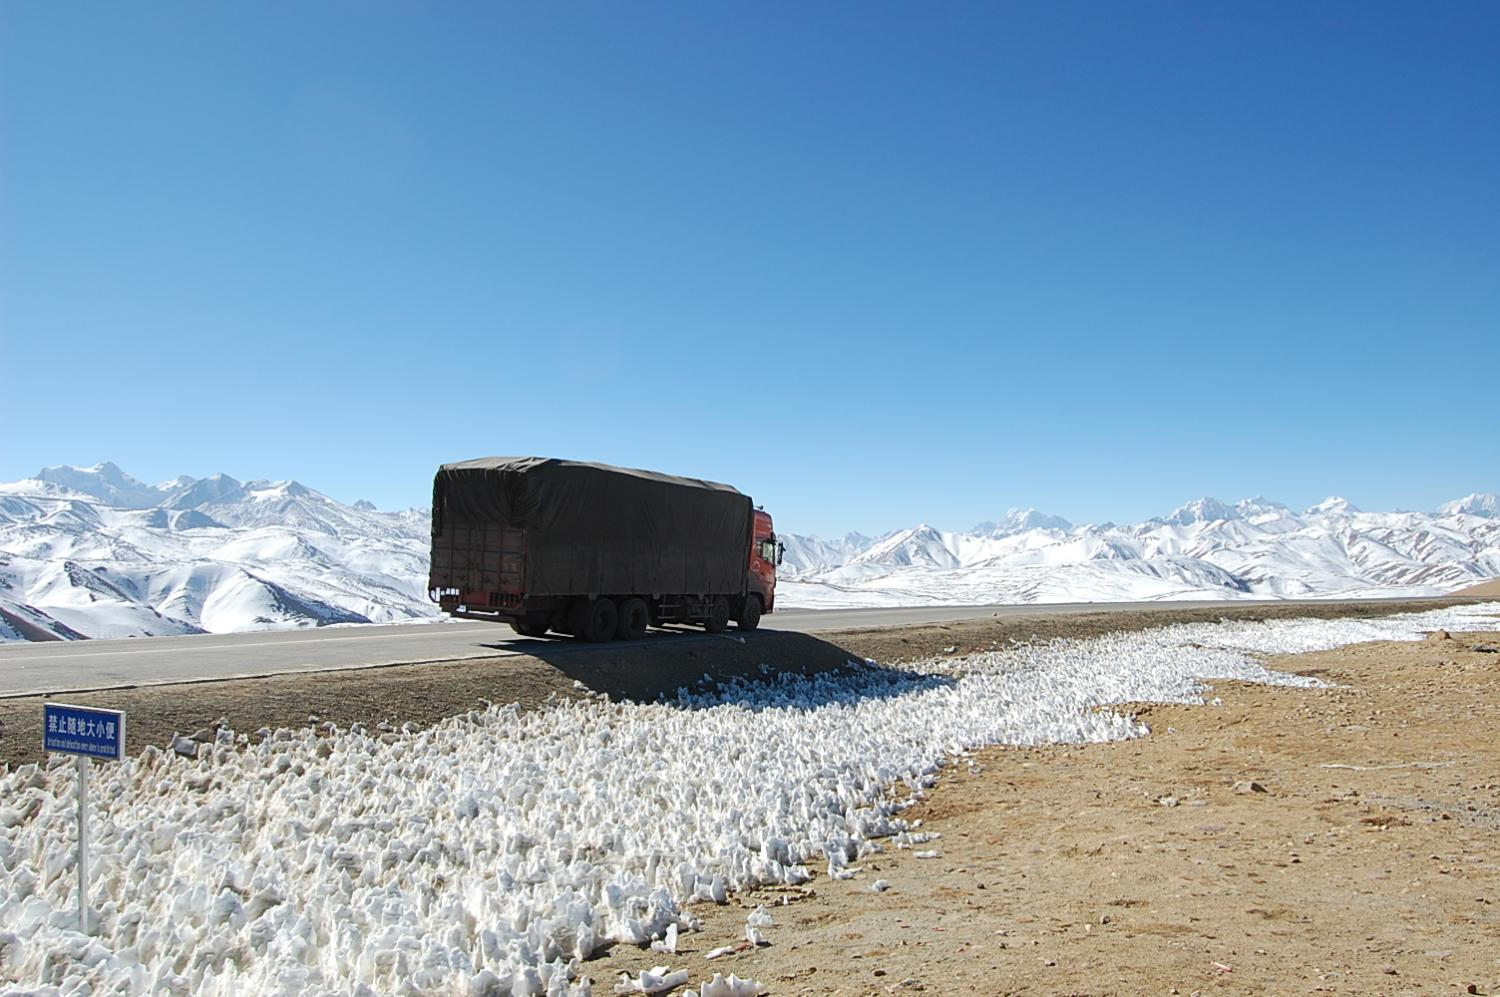 One of dozens of cargo trucks that daily descend from the Tibetan plateau to the China-Nepal border at Zhangmu-Kodari with a variety of Chinese exports